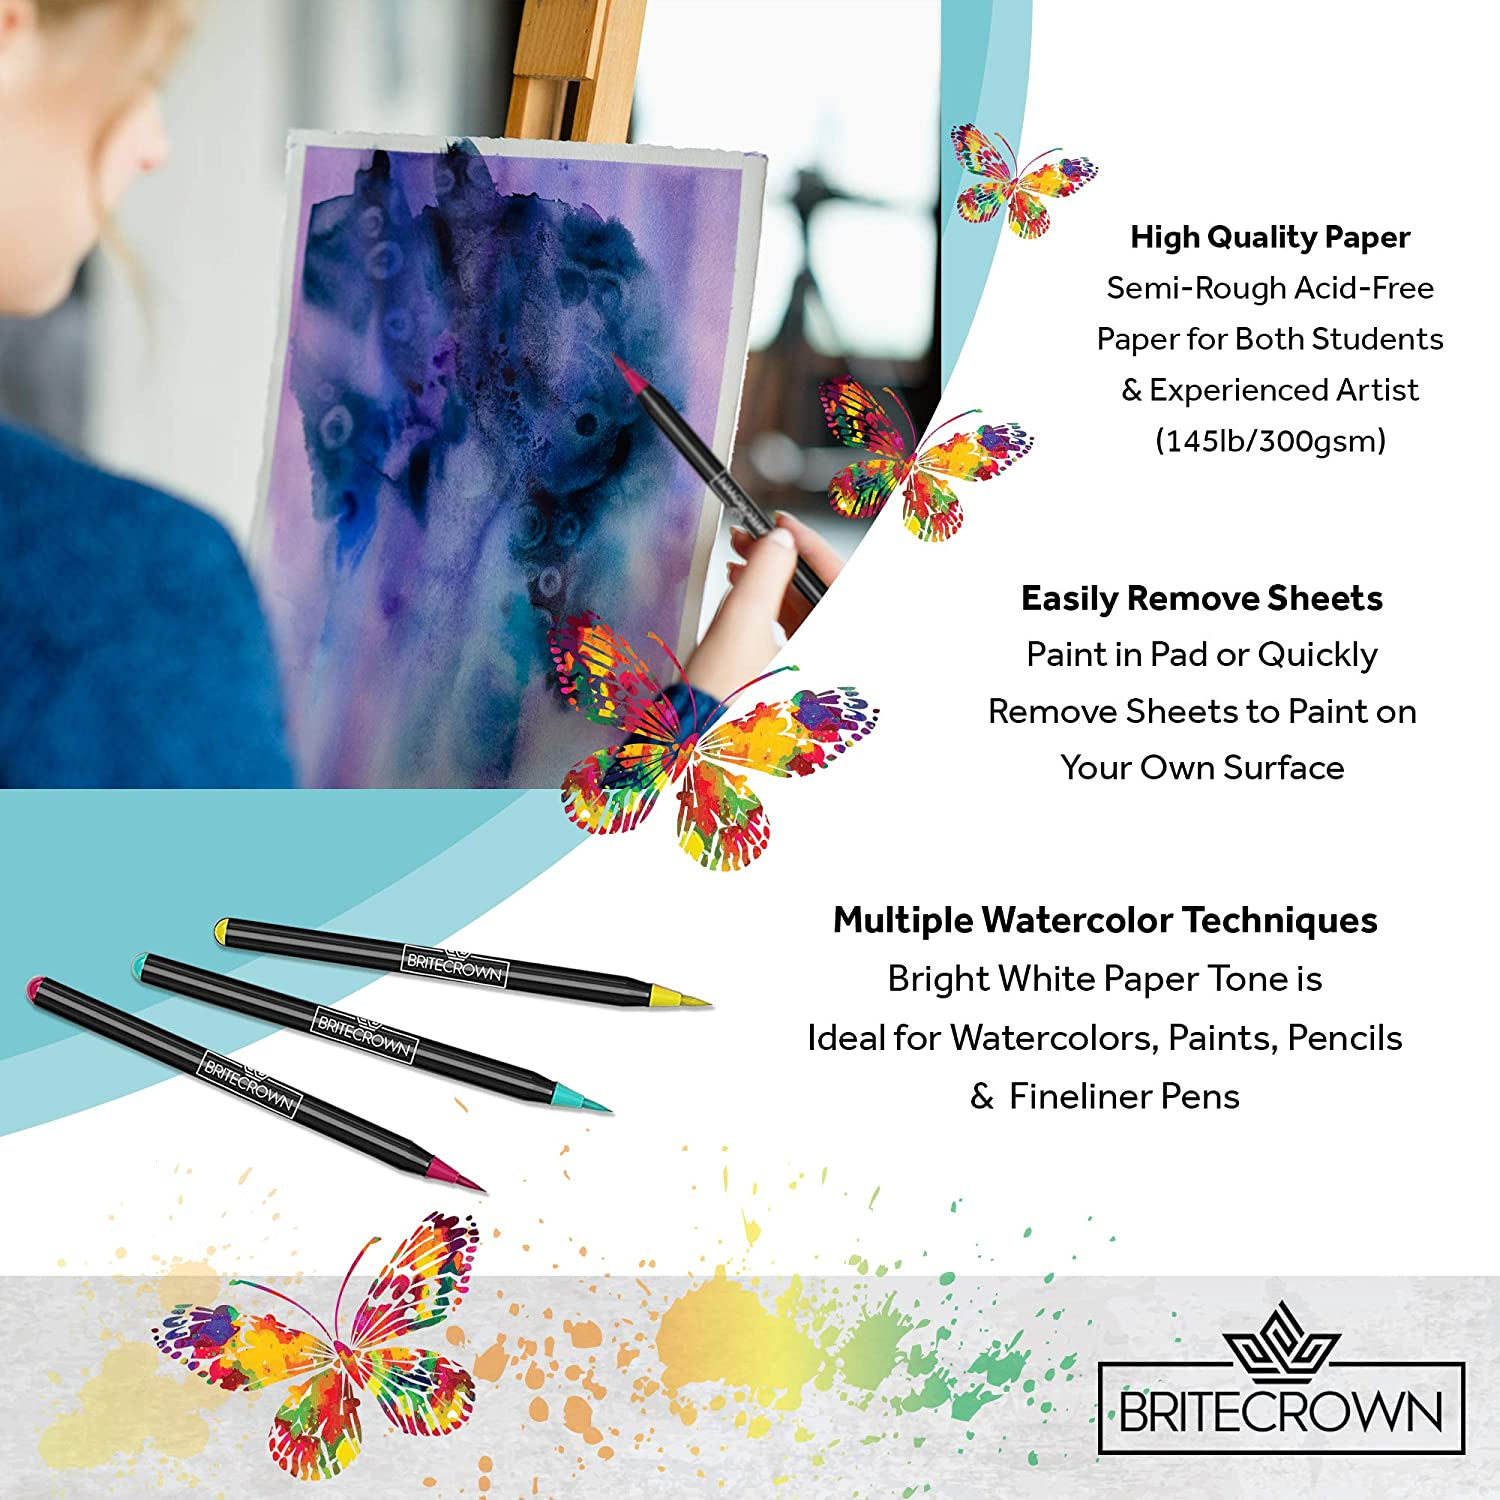 Brite Crown Watercolor Paper Pad 9x12 Teens and Adult Painters 140lb//300gsm Acid Free Watercolor Paper for Kids Bright White 30 Sheets Cold Press Texture Wet Media /& Mixed Media Artists